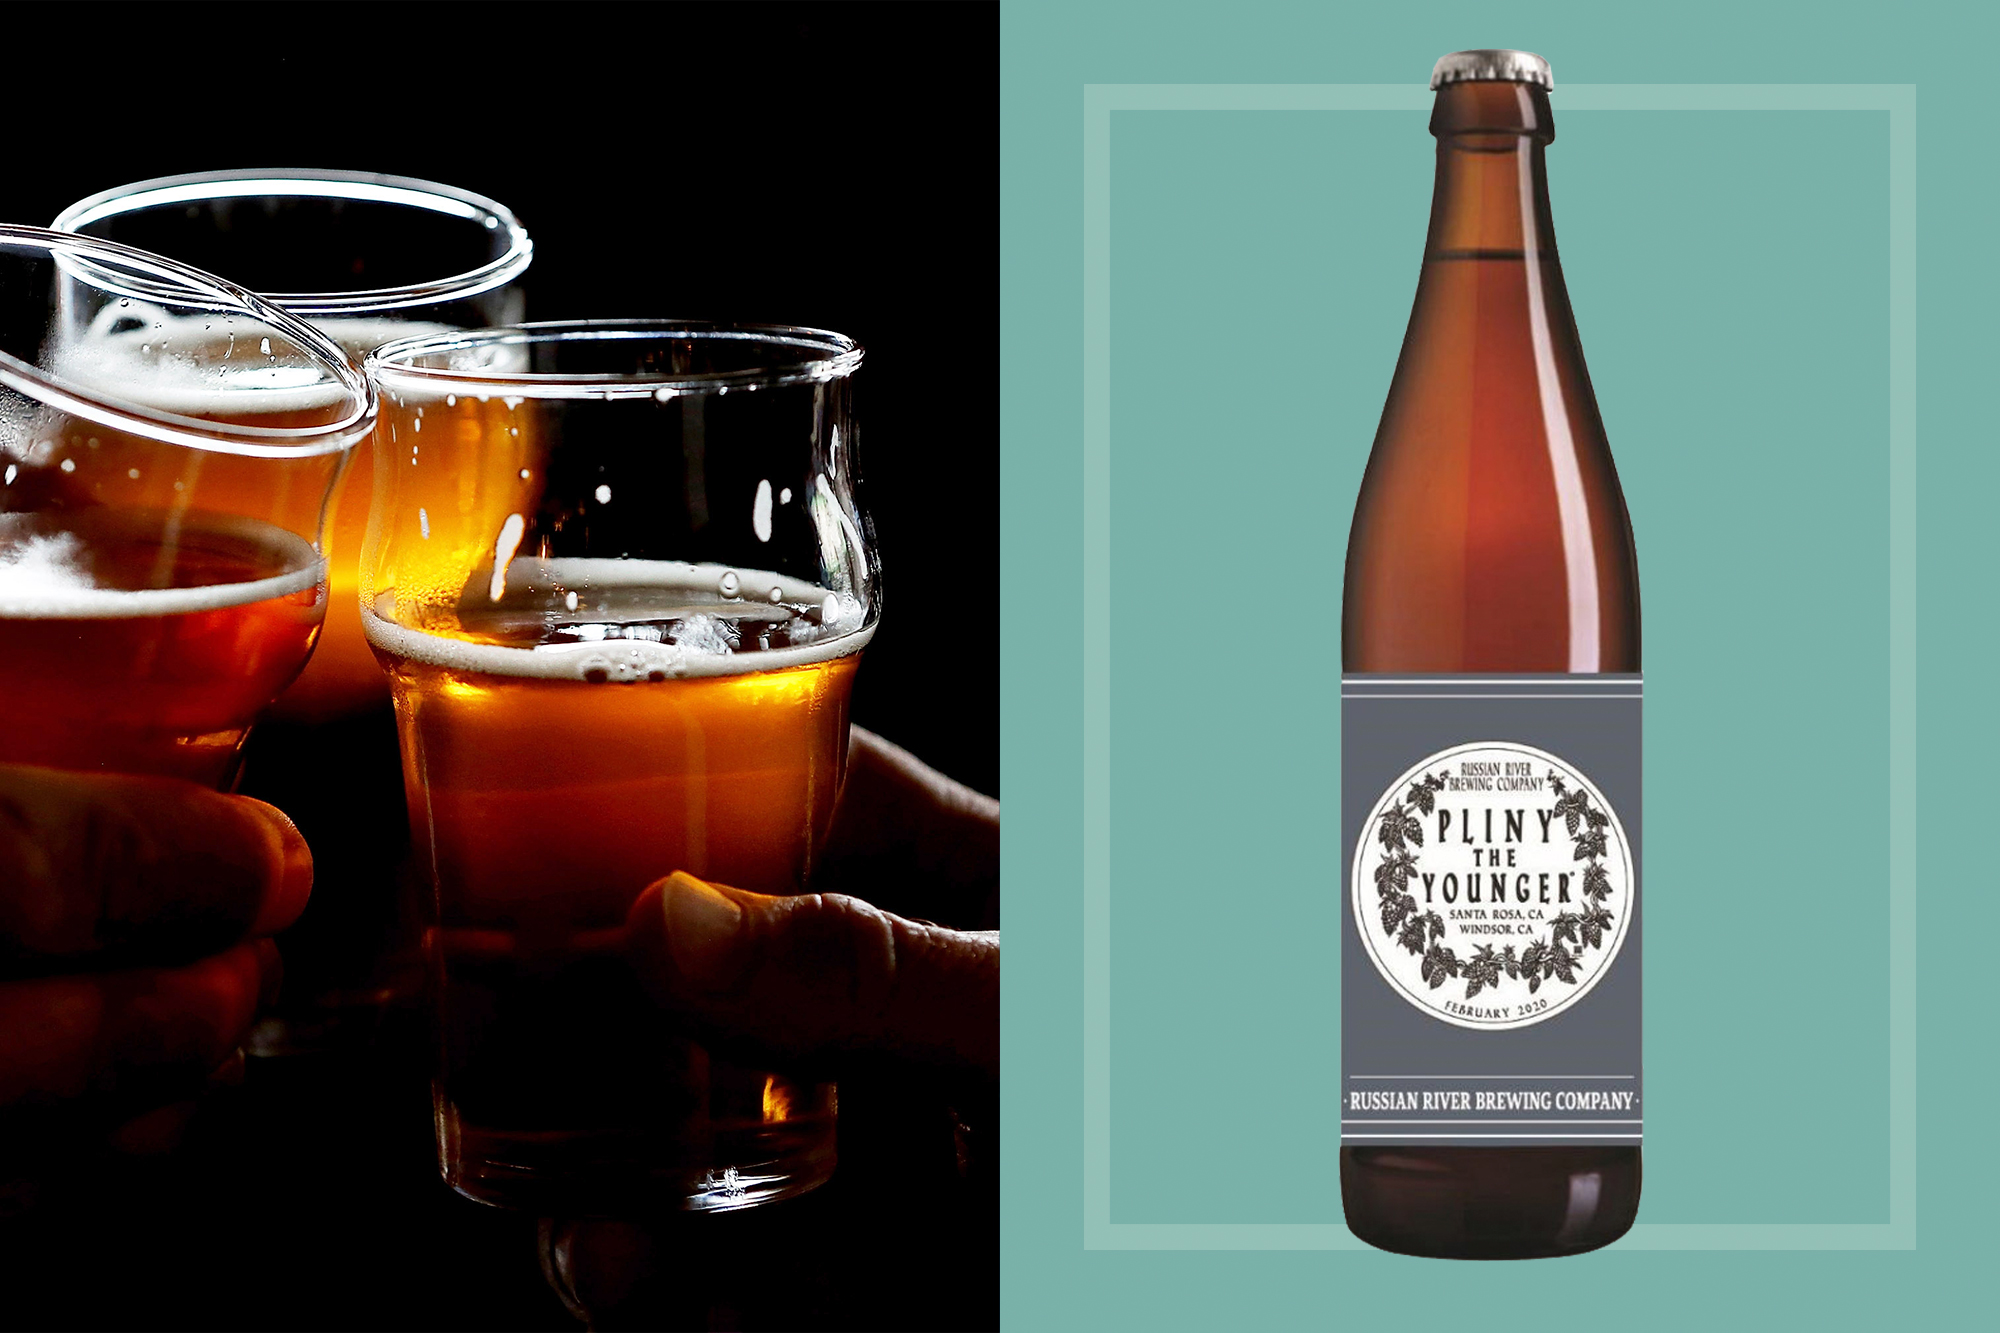 Russian River Brewing Pliny the Younger beer bottle